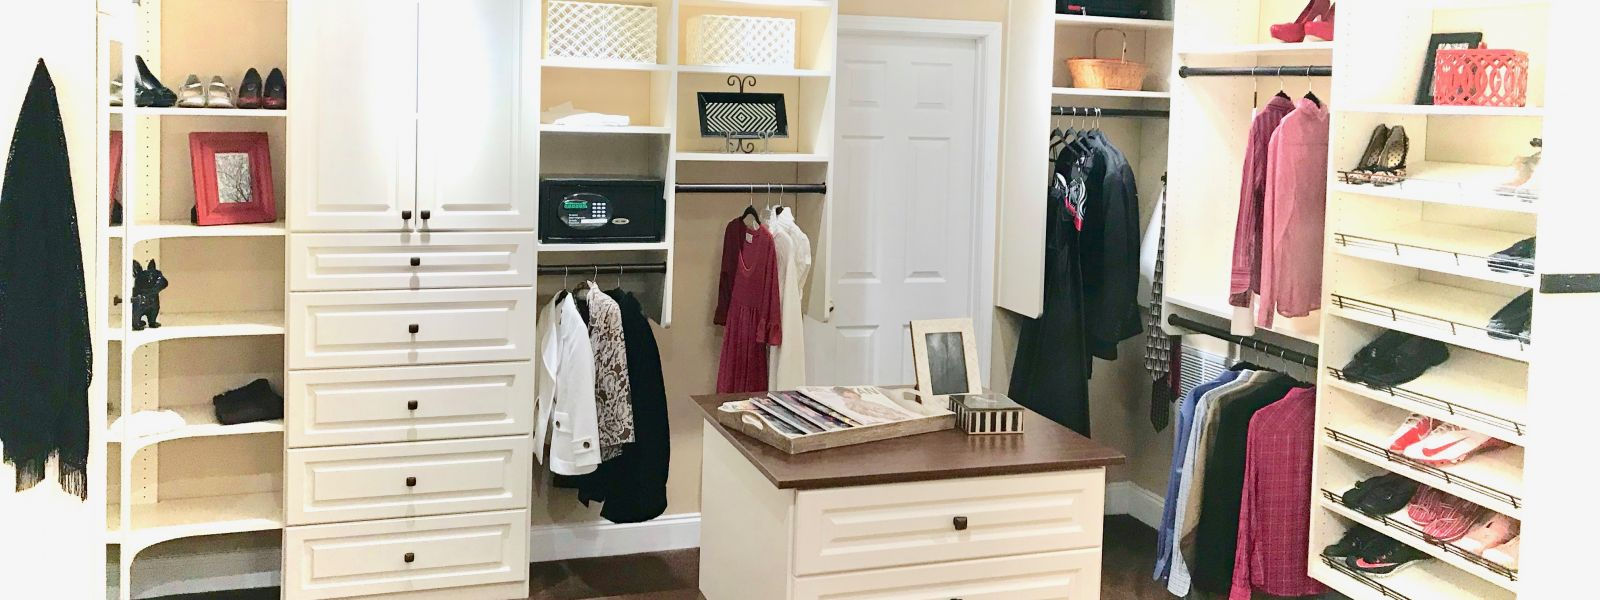 Advantages of a Custom Closet over DIY